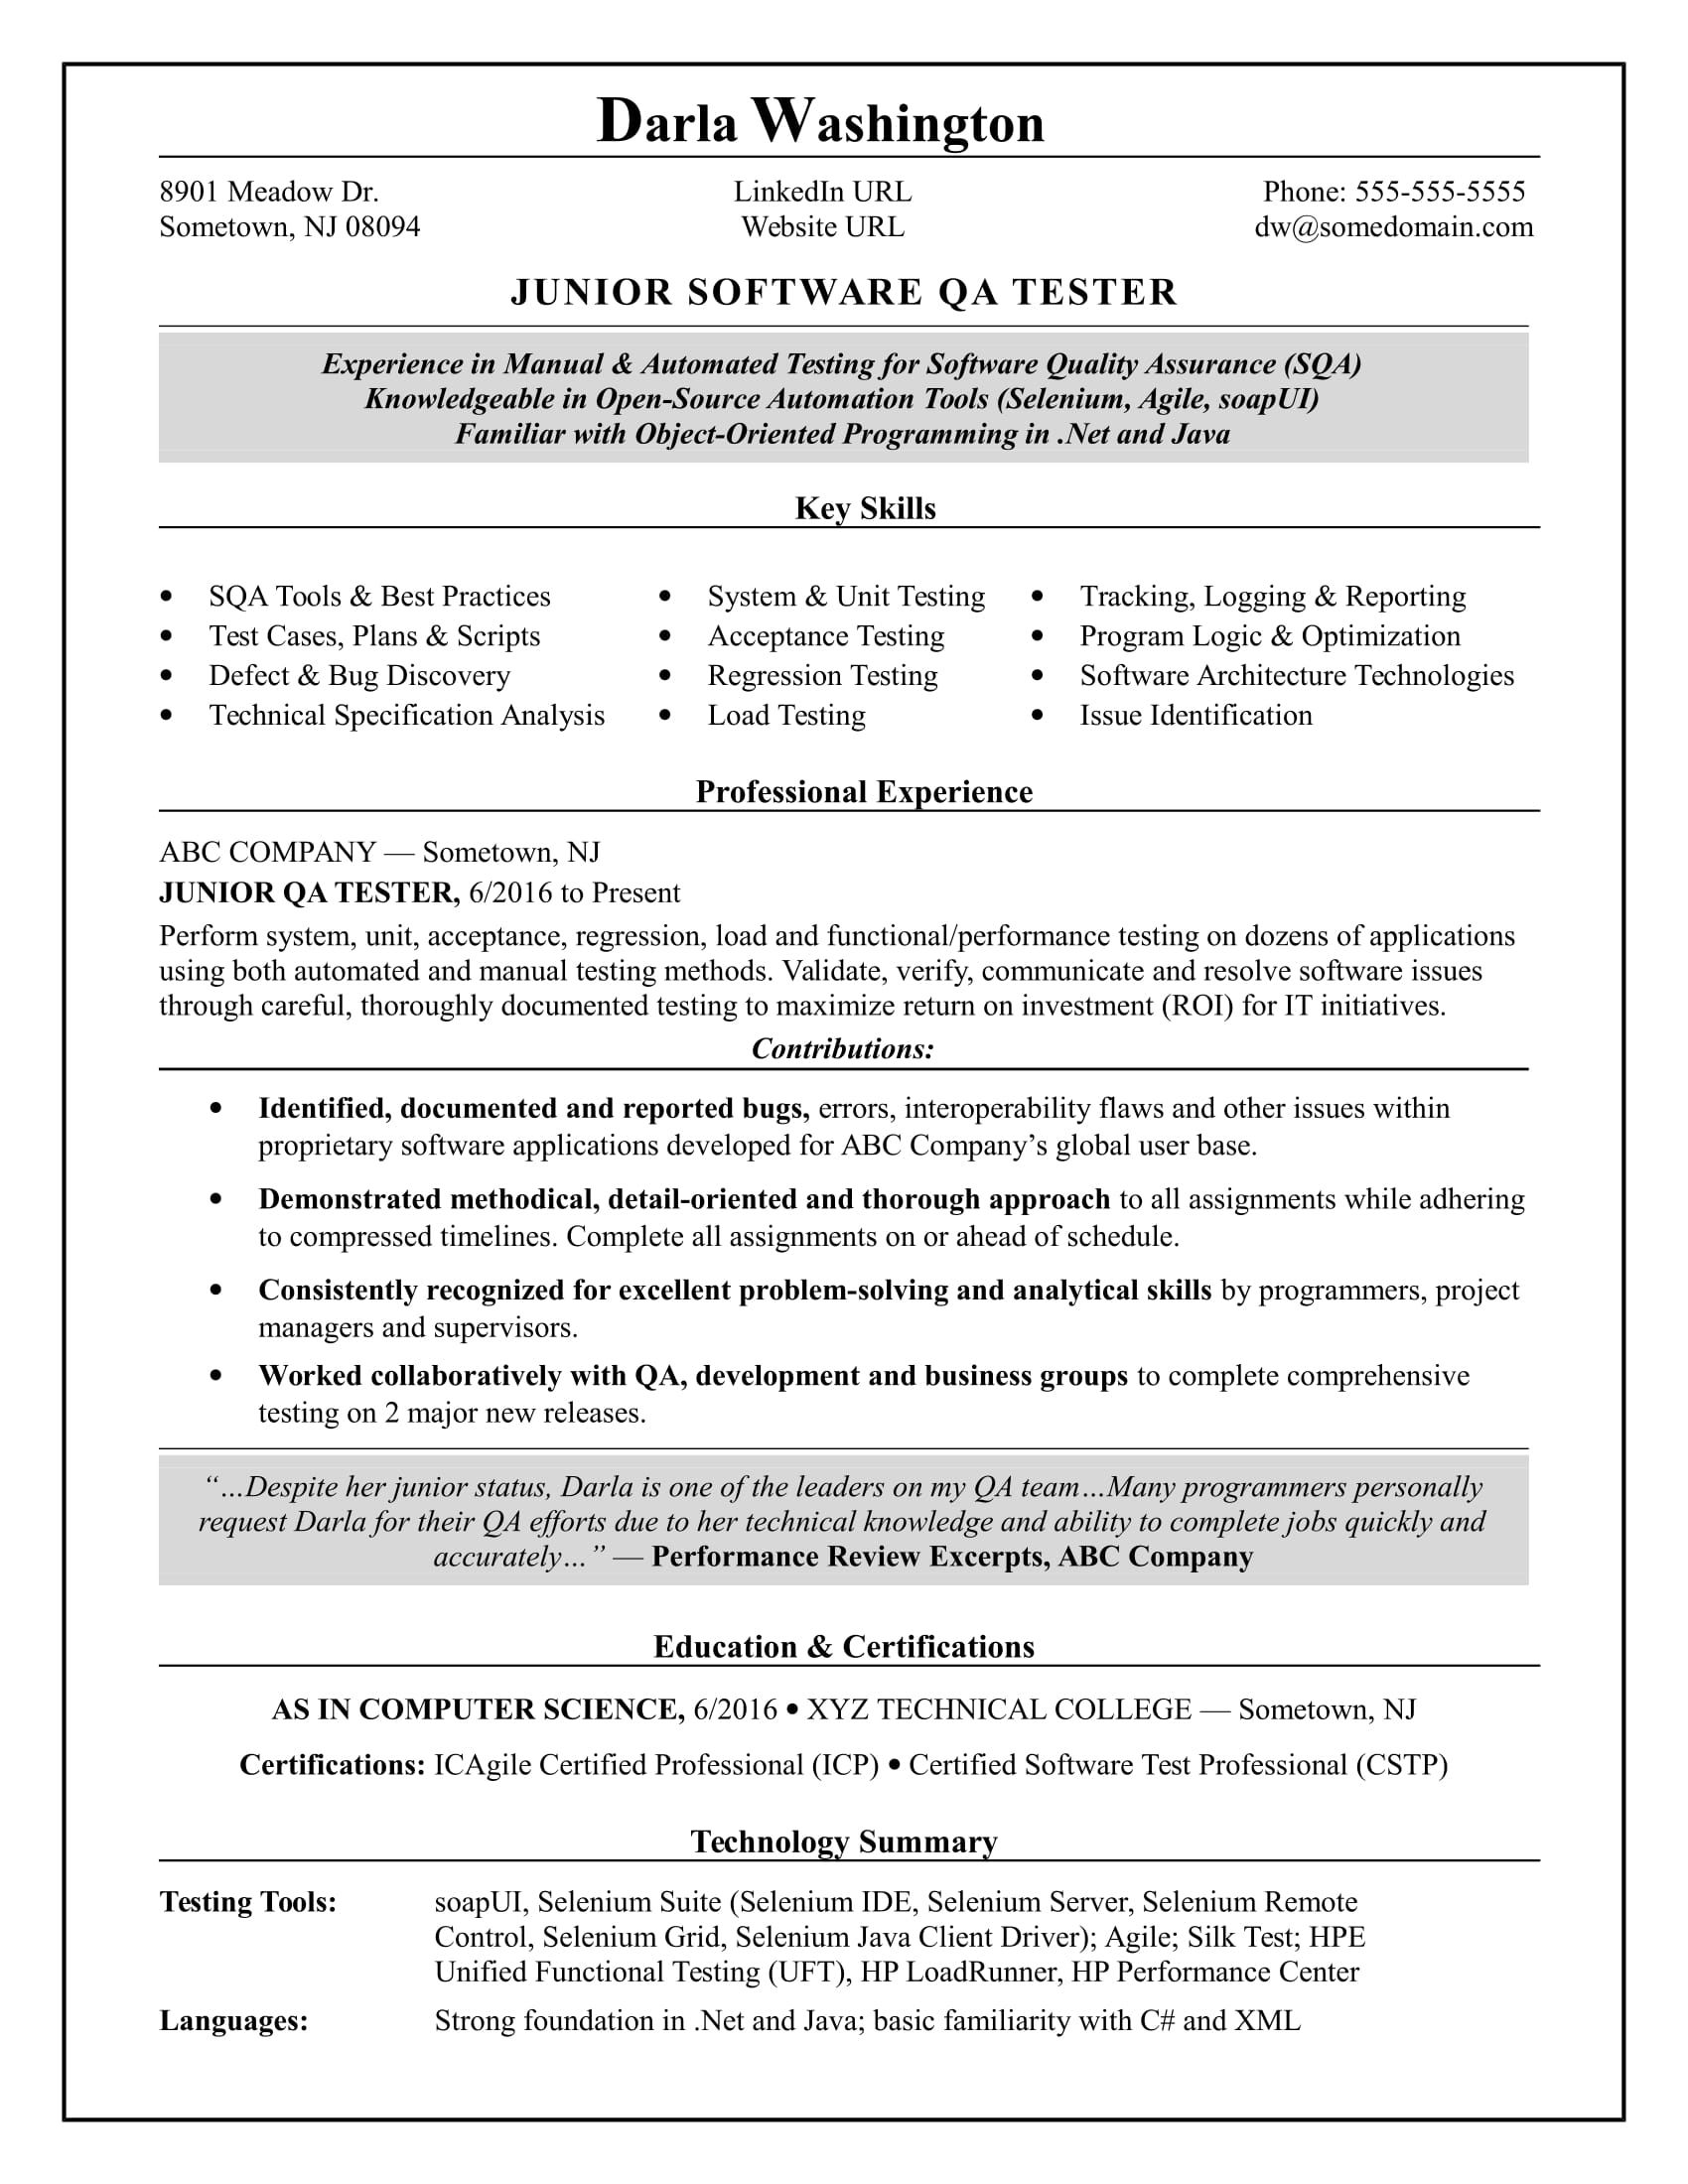 Sample Resume For Manual Testing EntryLevel QA Software Tester Resume Sample Monster 3